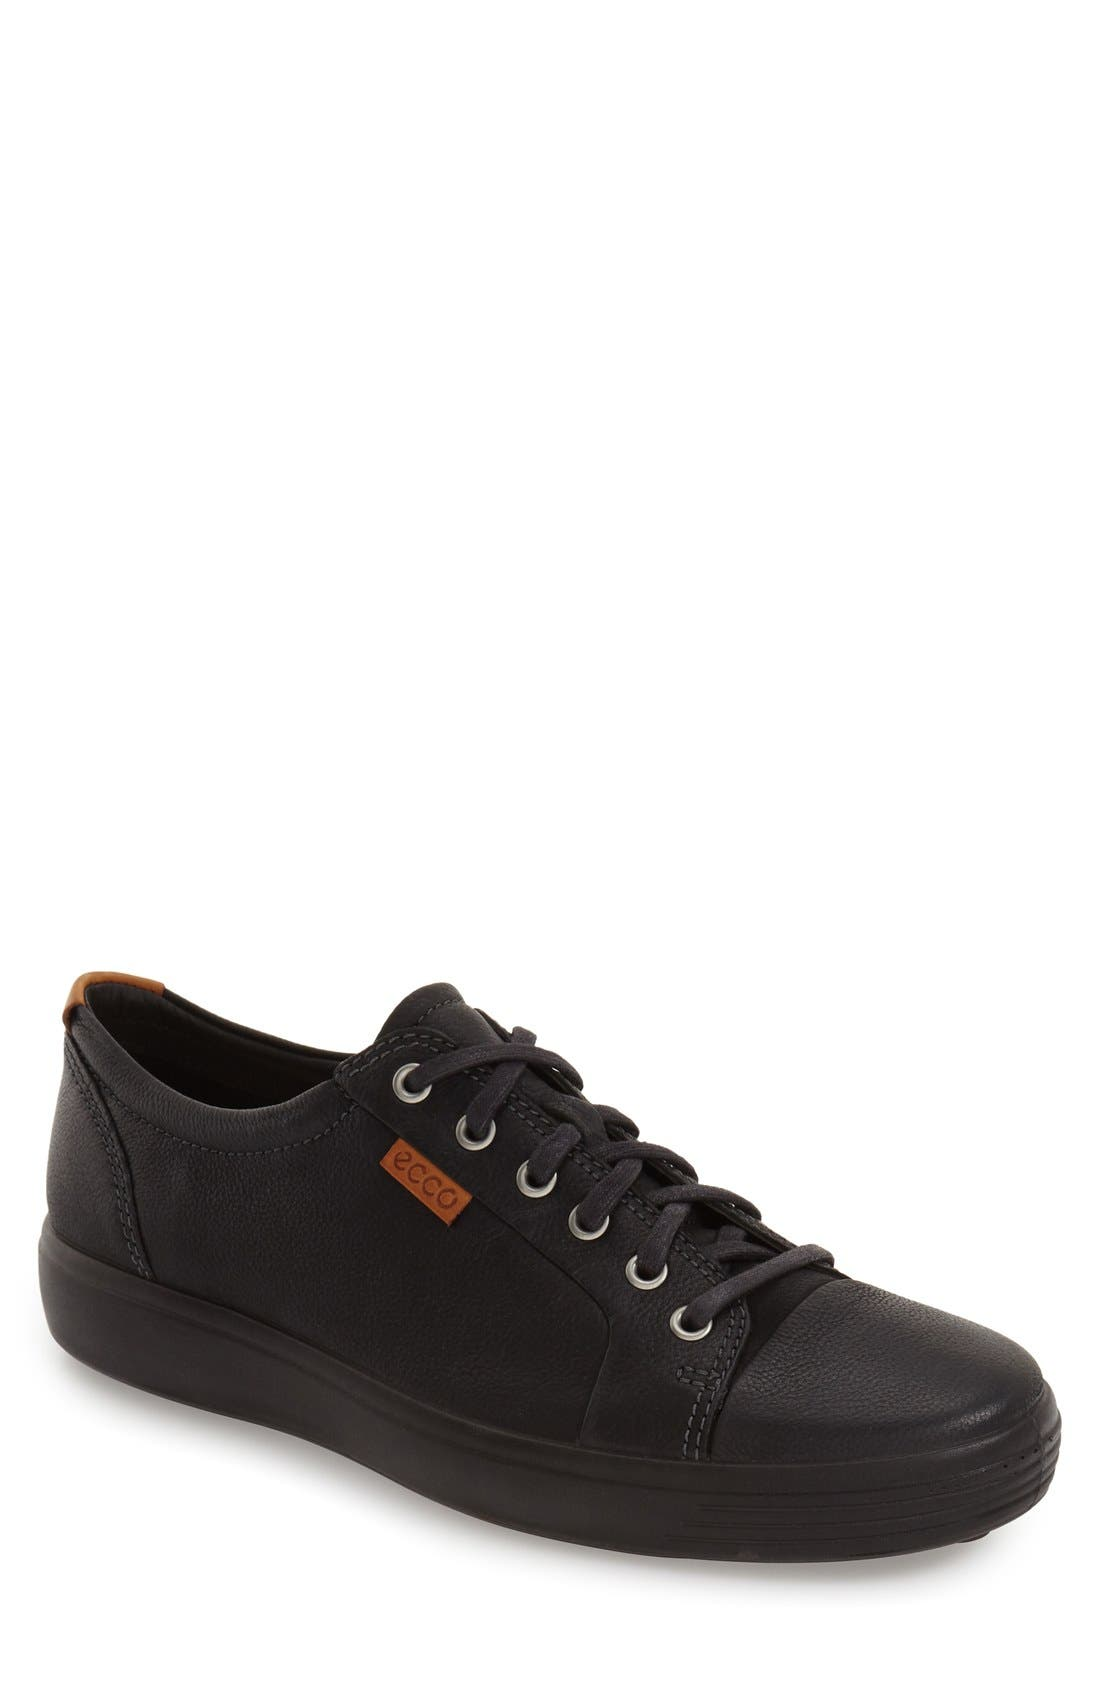 Soft VII Lace-Up Sneaker,                             Main thumbnail 13, color,